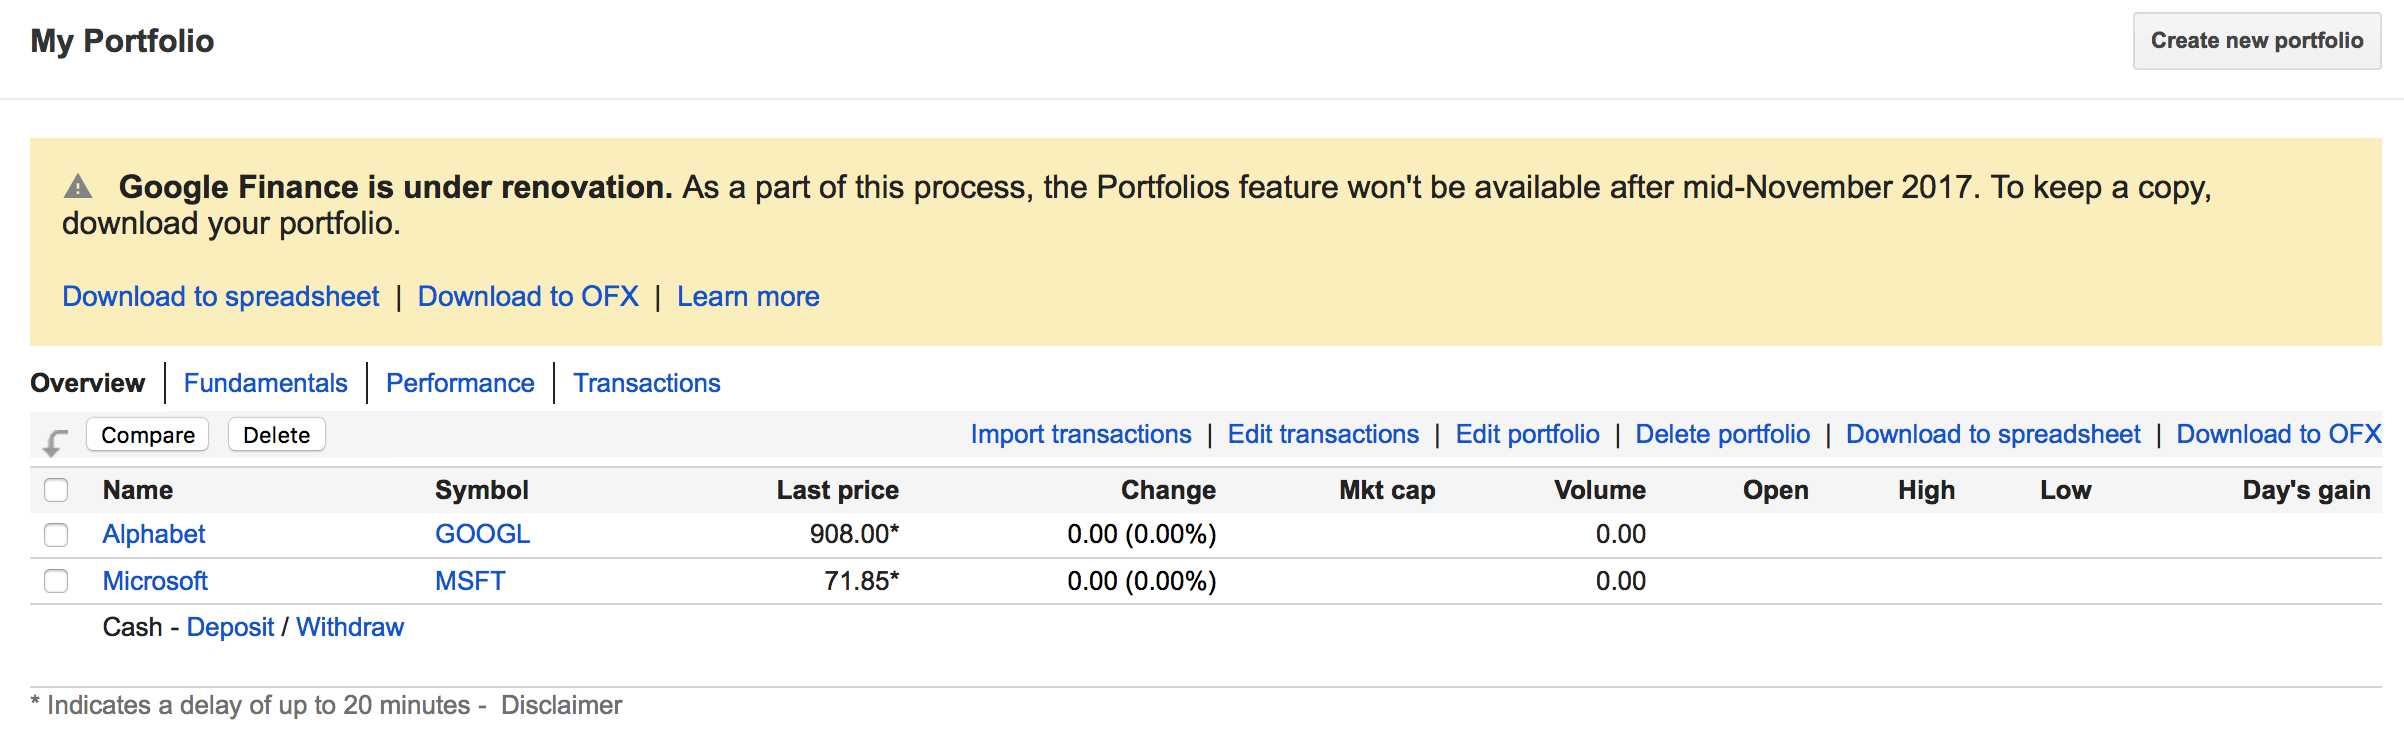 Google Finance to Retire Portfolio Management Tools